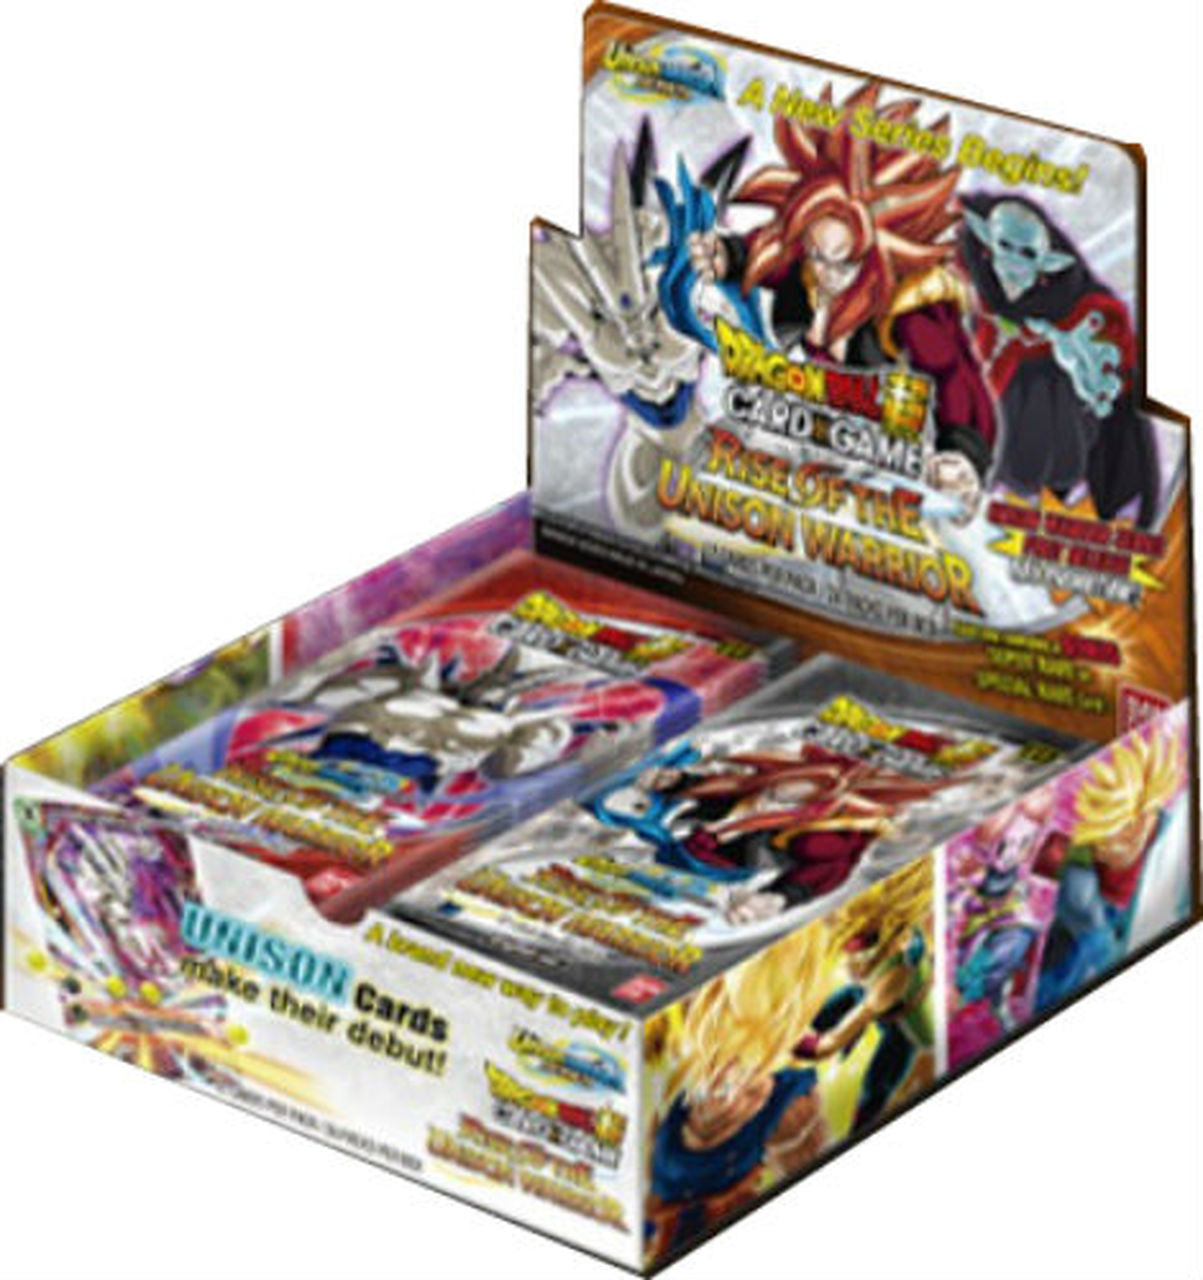 DRAGON BALL SUPER CARD GAME Unison Warrior Series Rise of the Unison Warrior Booster Box | Dice Addiction LLC